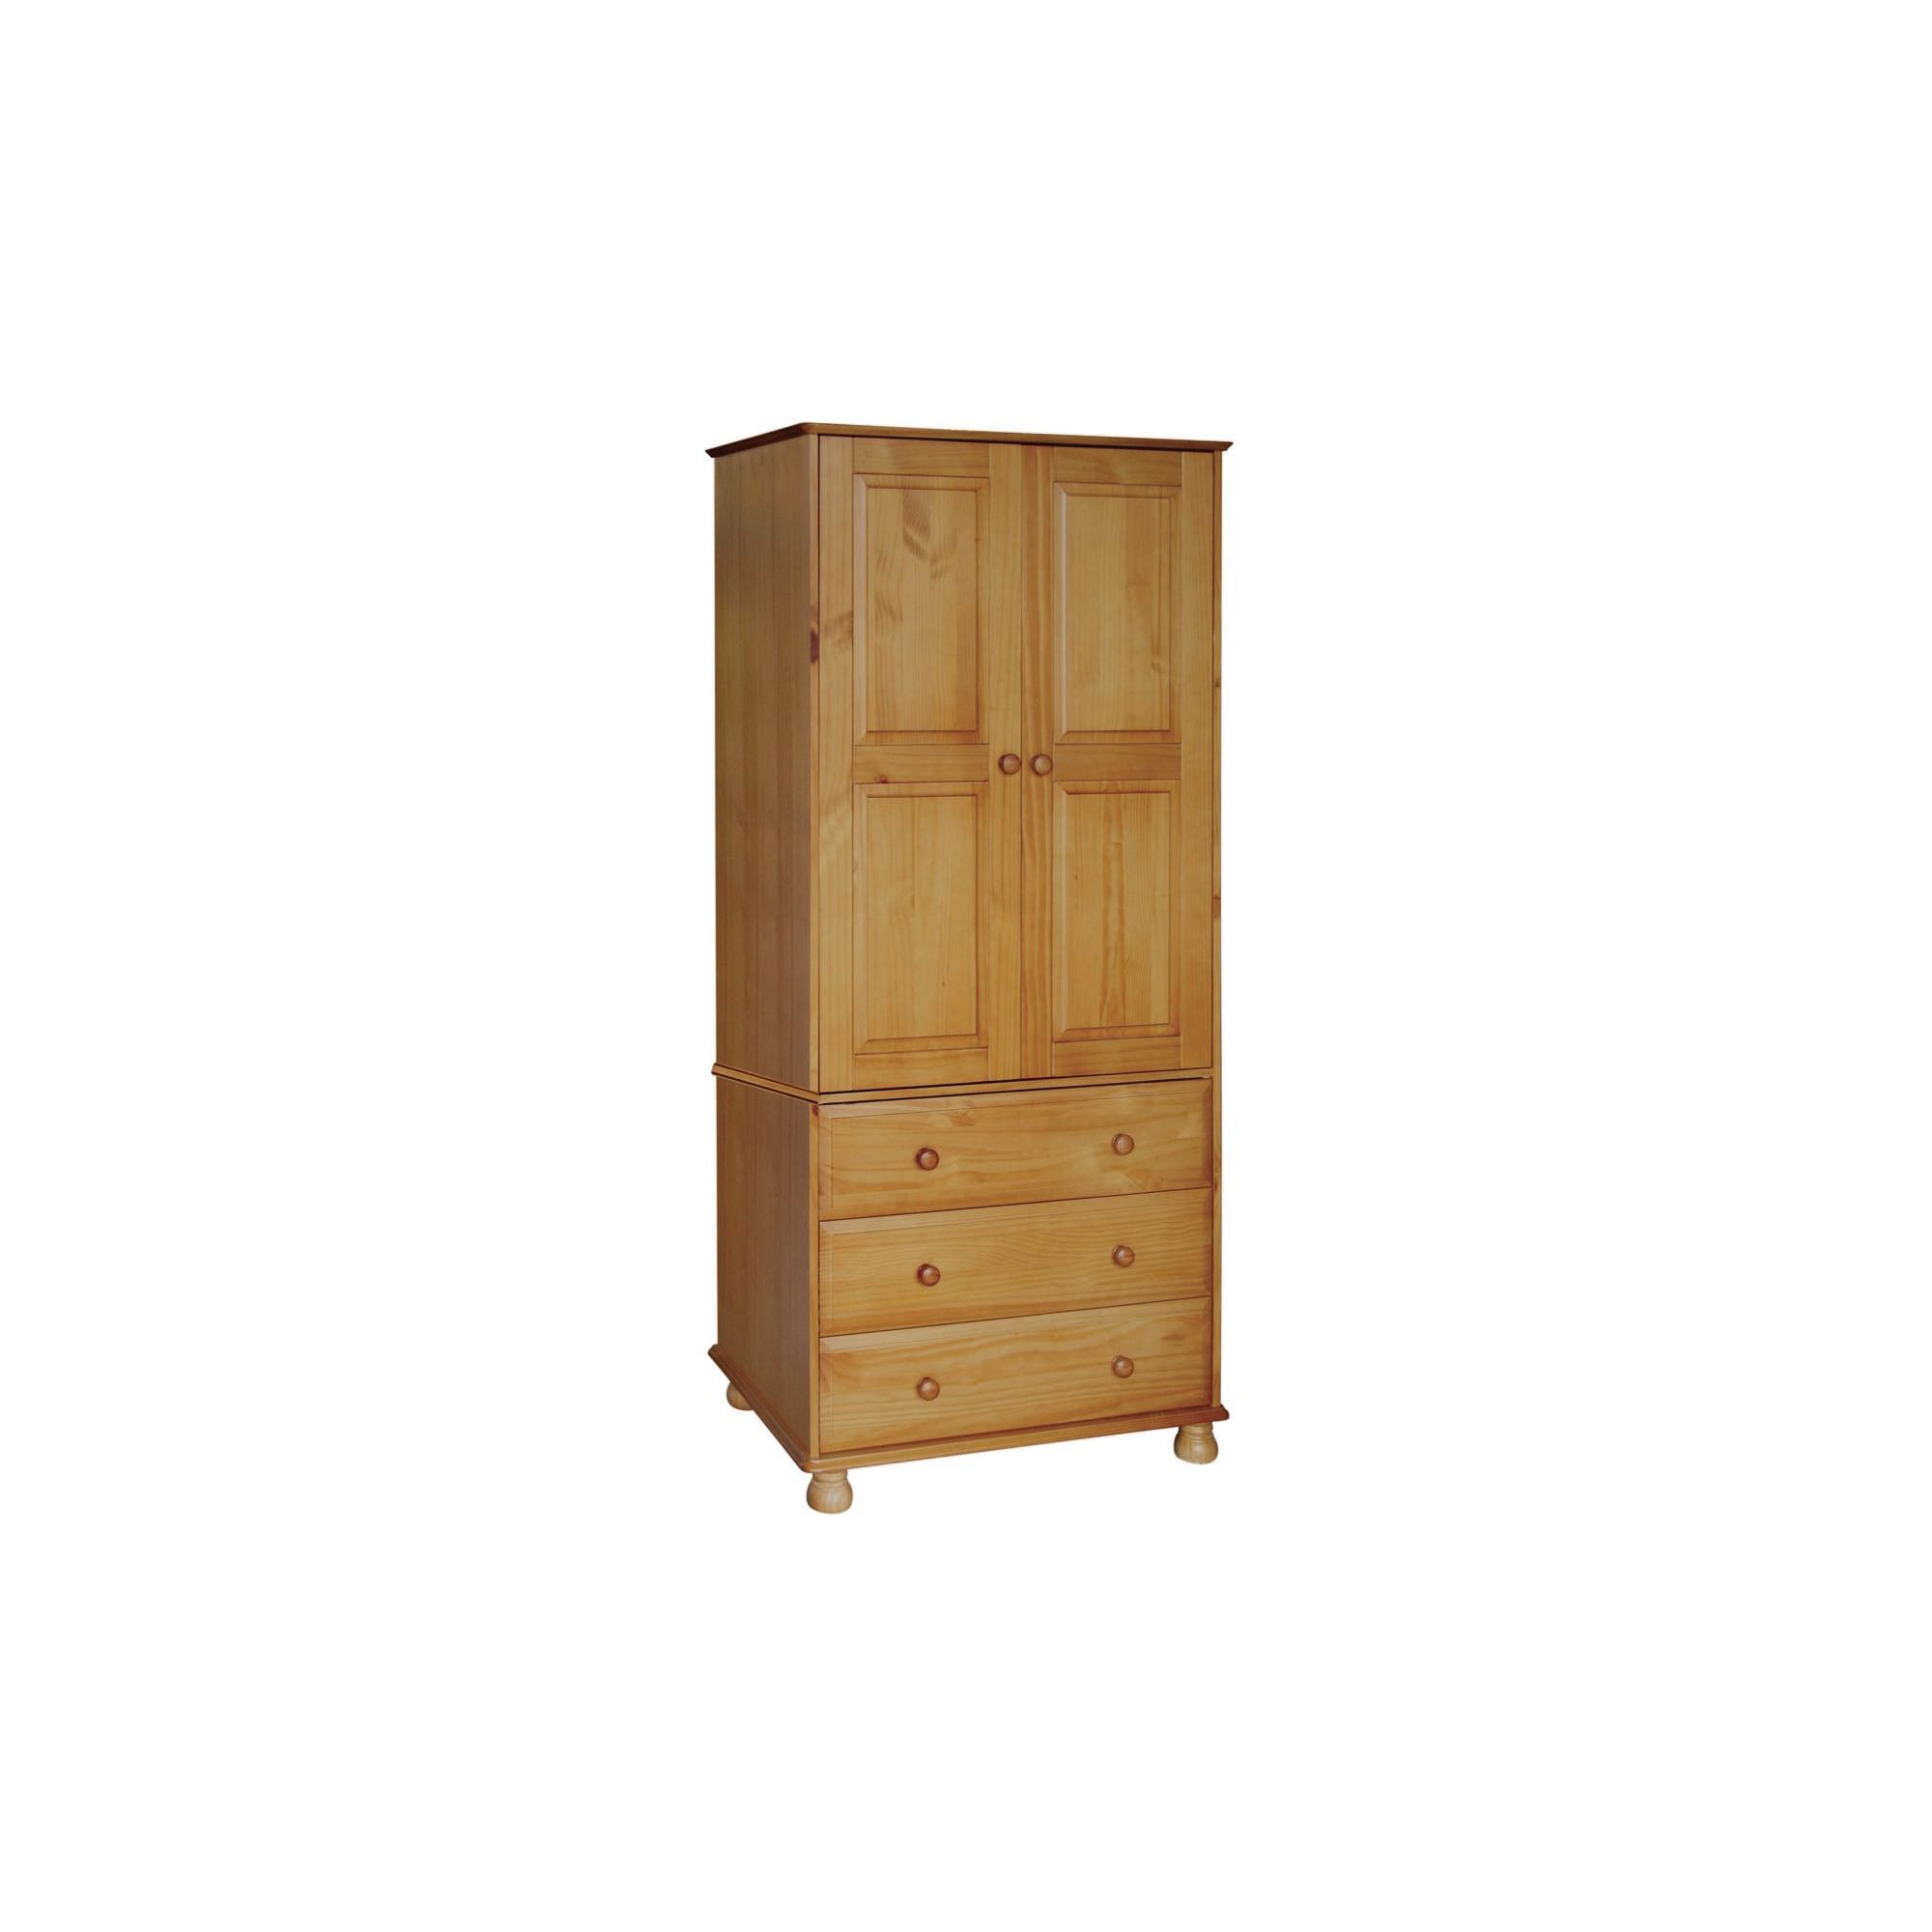 Home Essence Sheraton 3 Drawer Wardrobe in Solid Pine at Tesco Direct